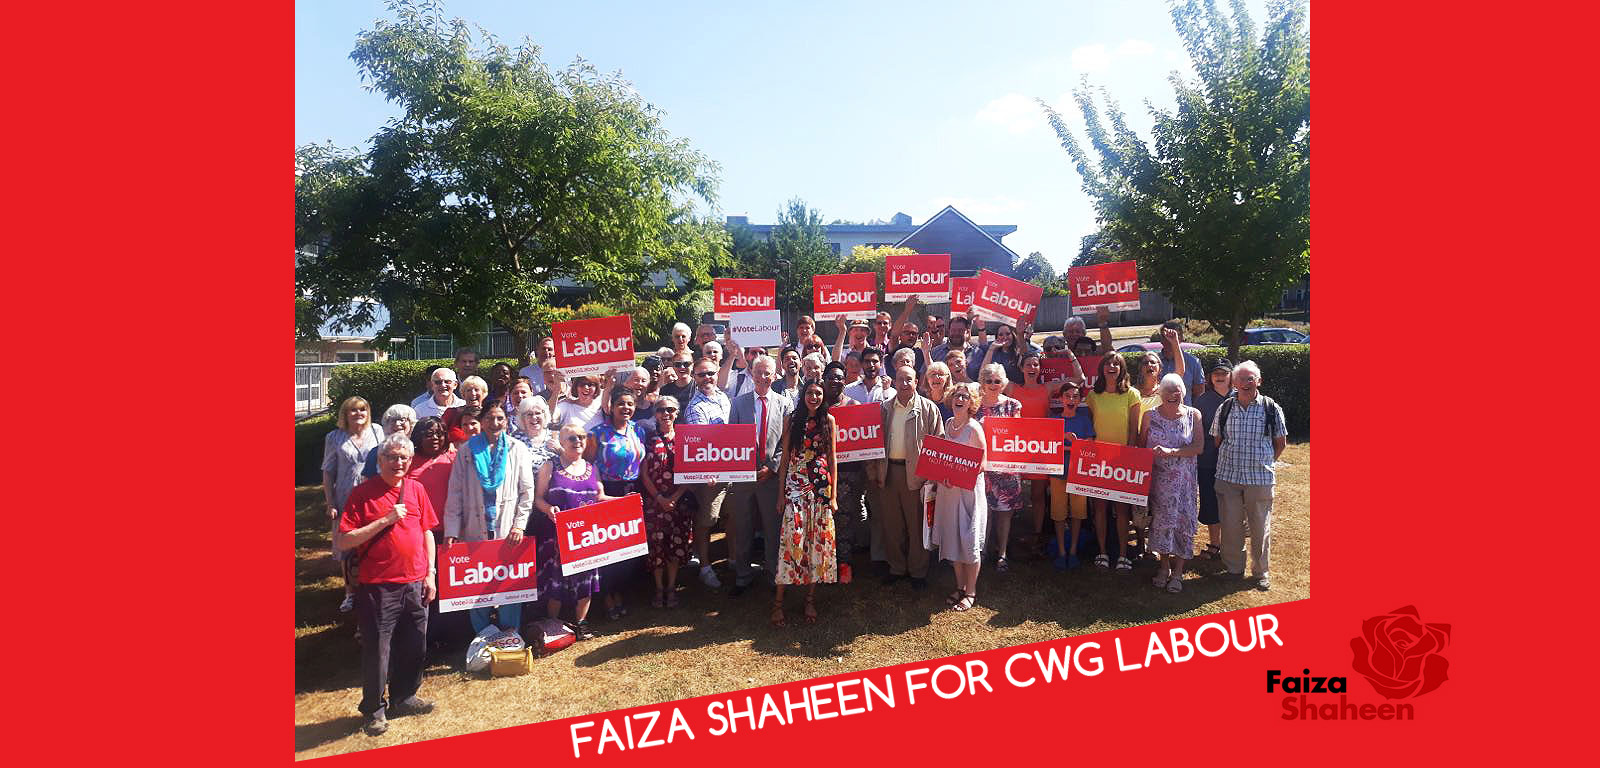 Faiza Shaheen For CWG Labour 2018